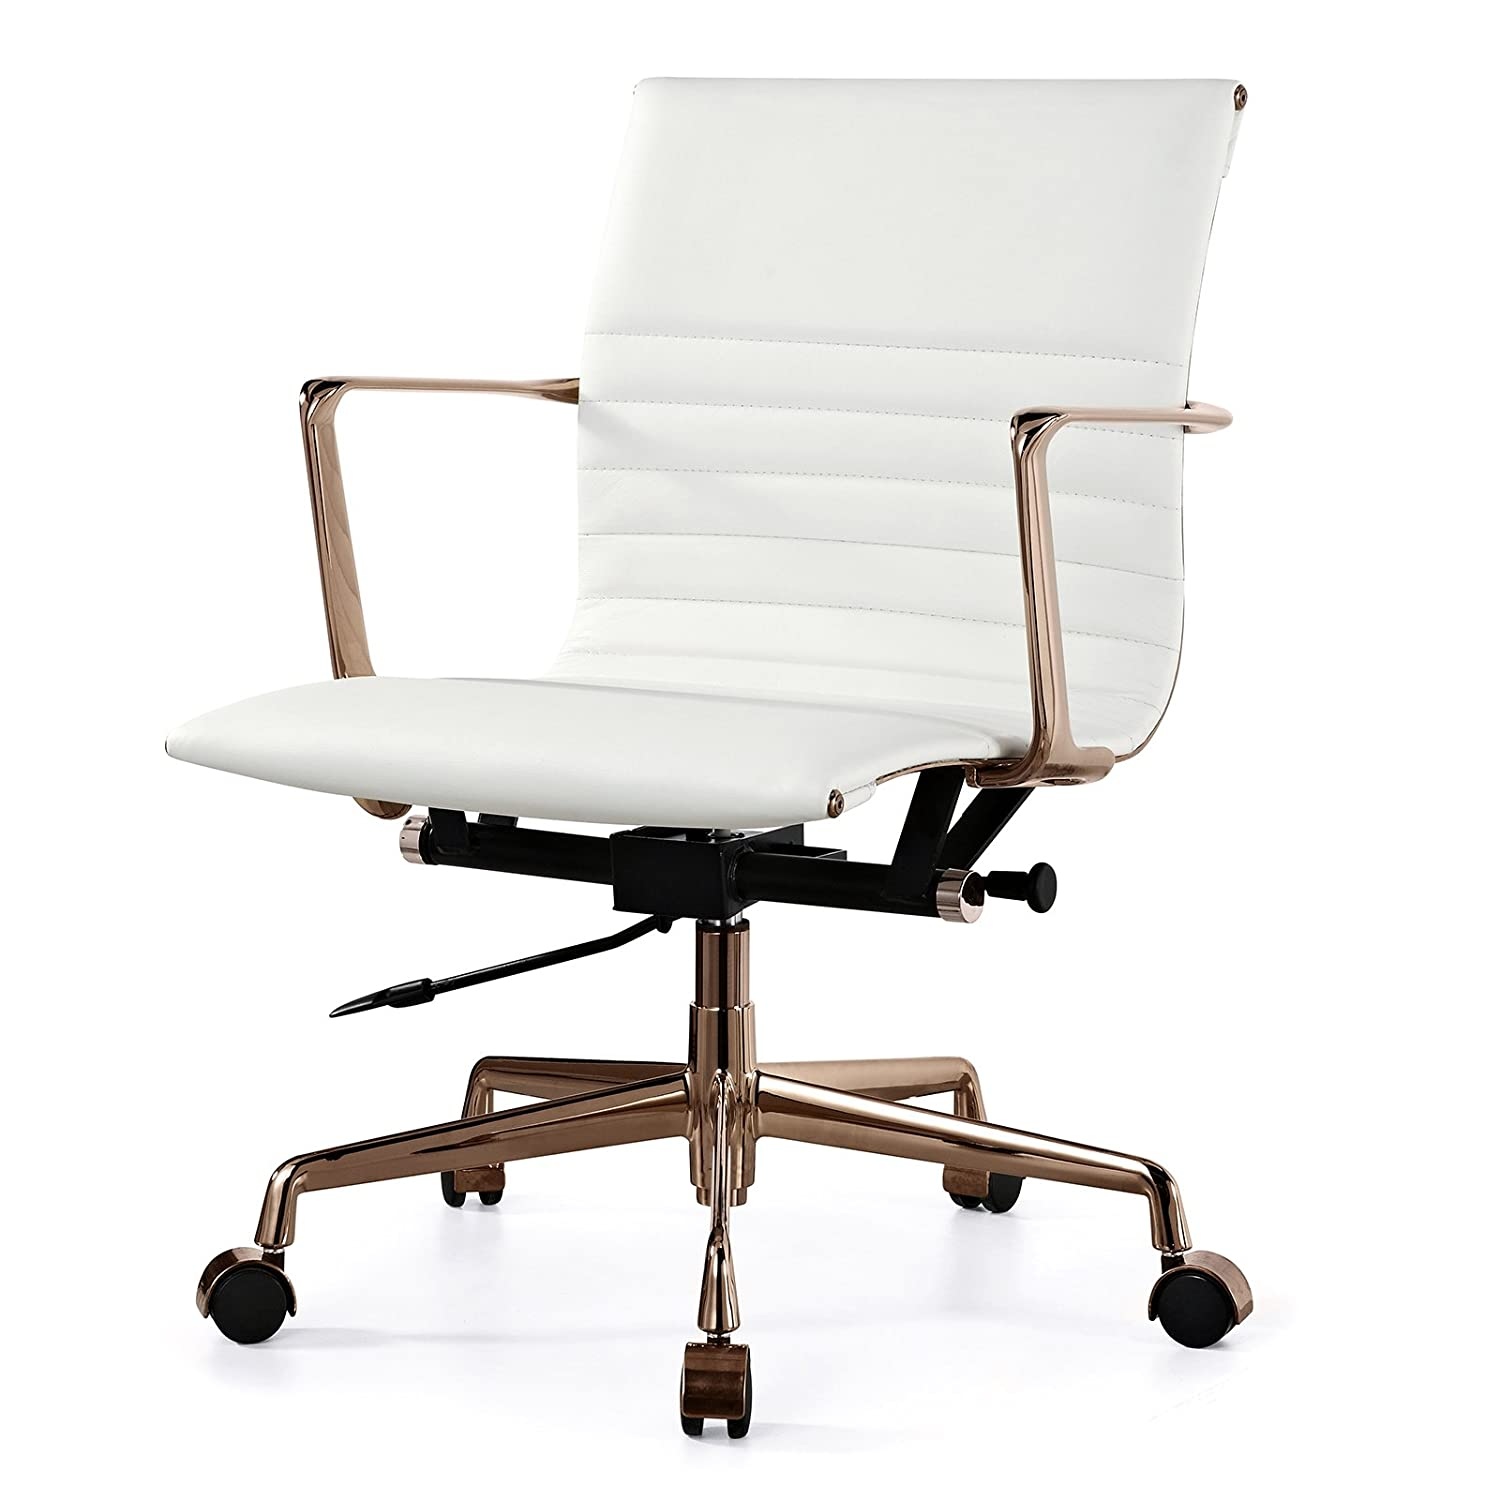 amazon rose gold office dp chair dining kitchen italian meelano com leather white